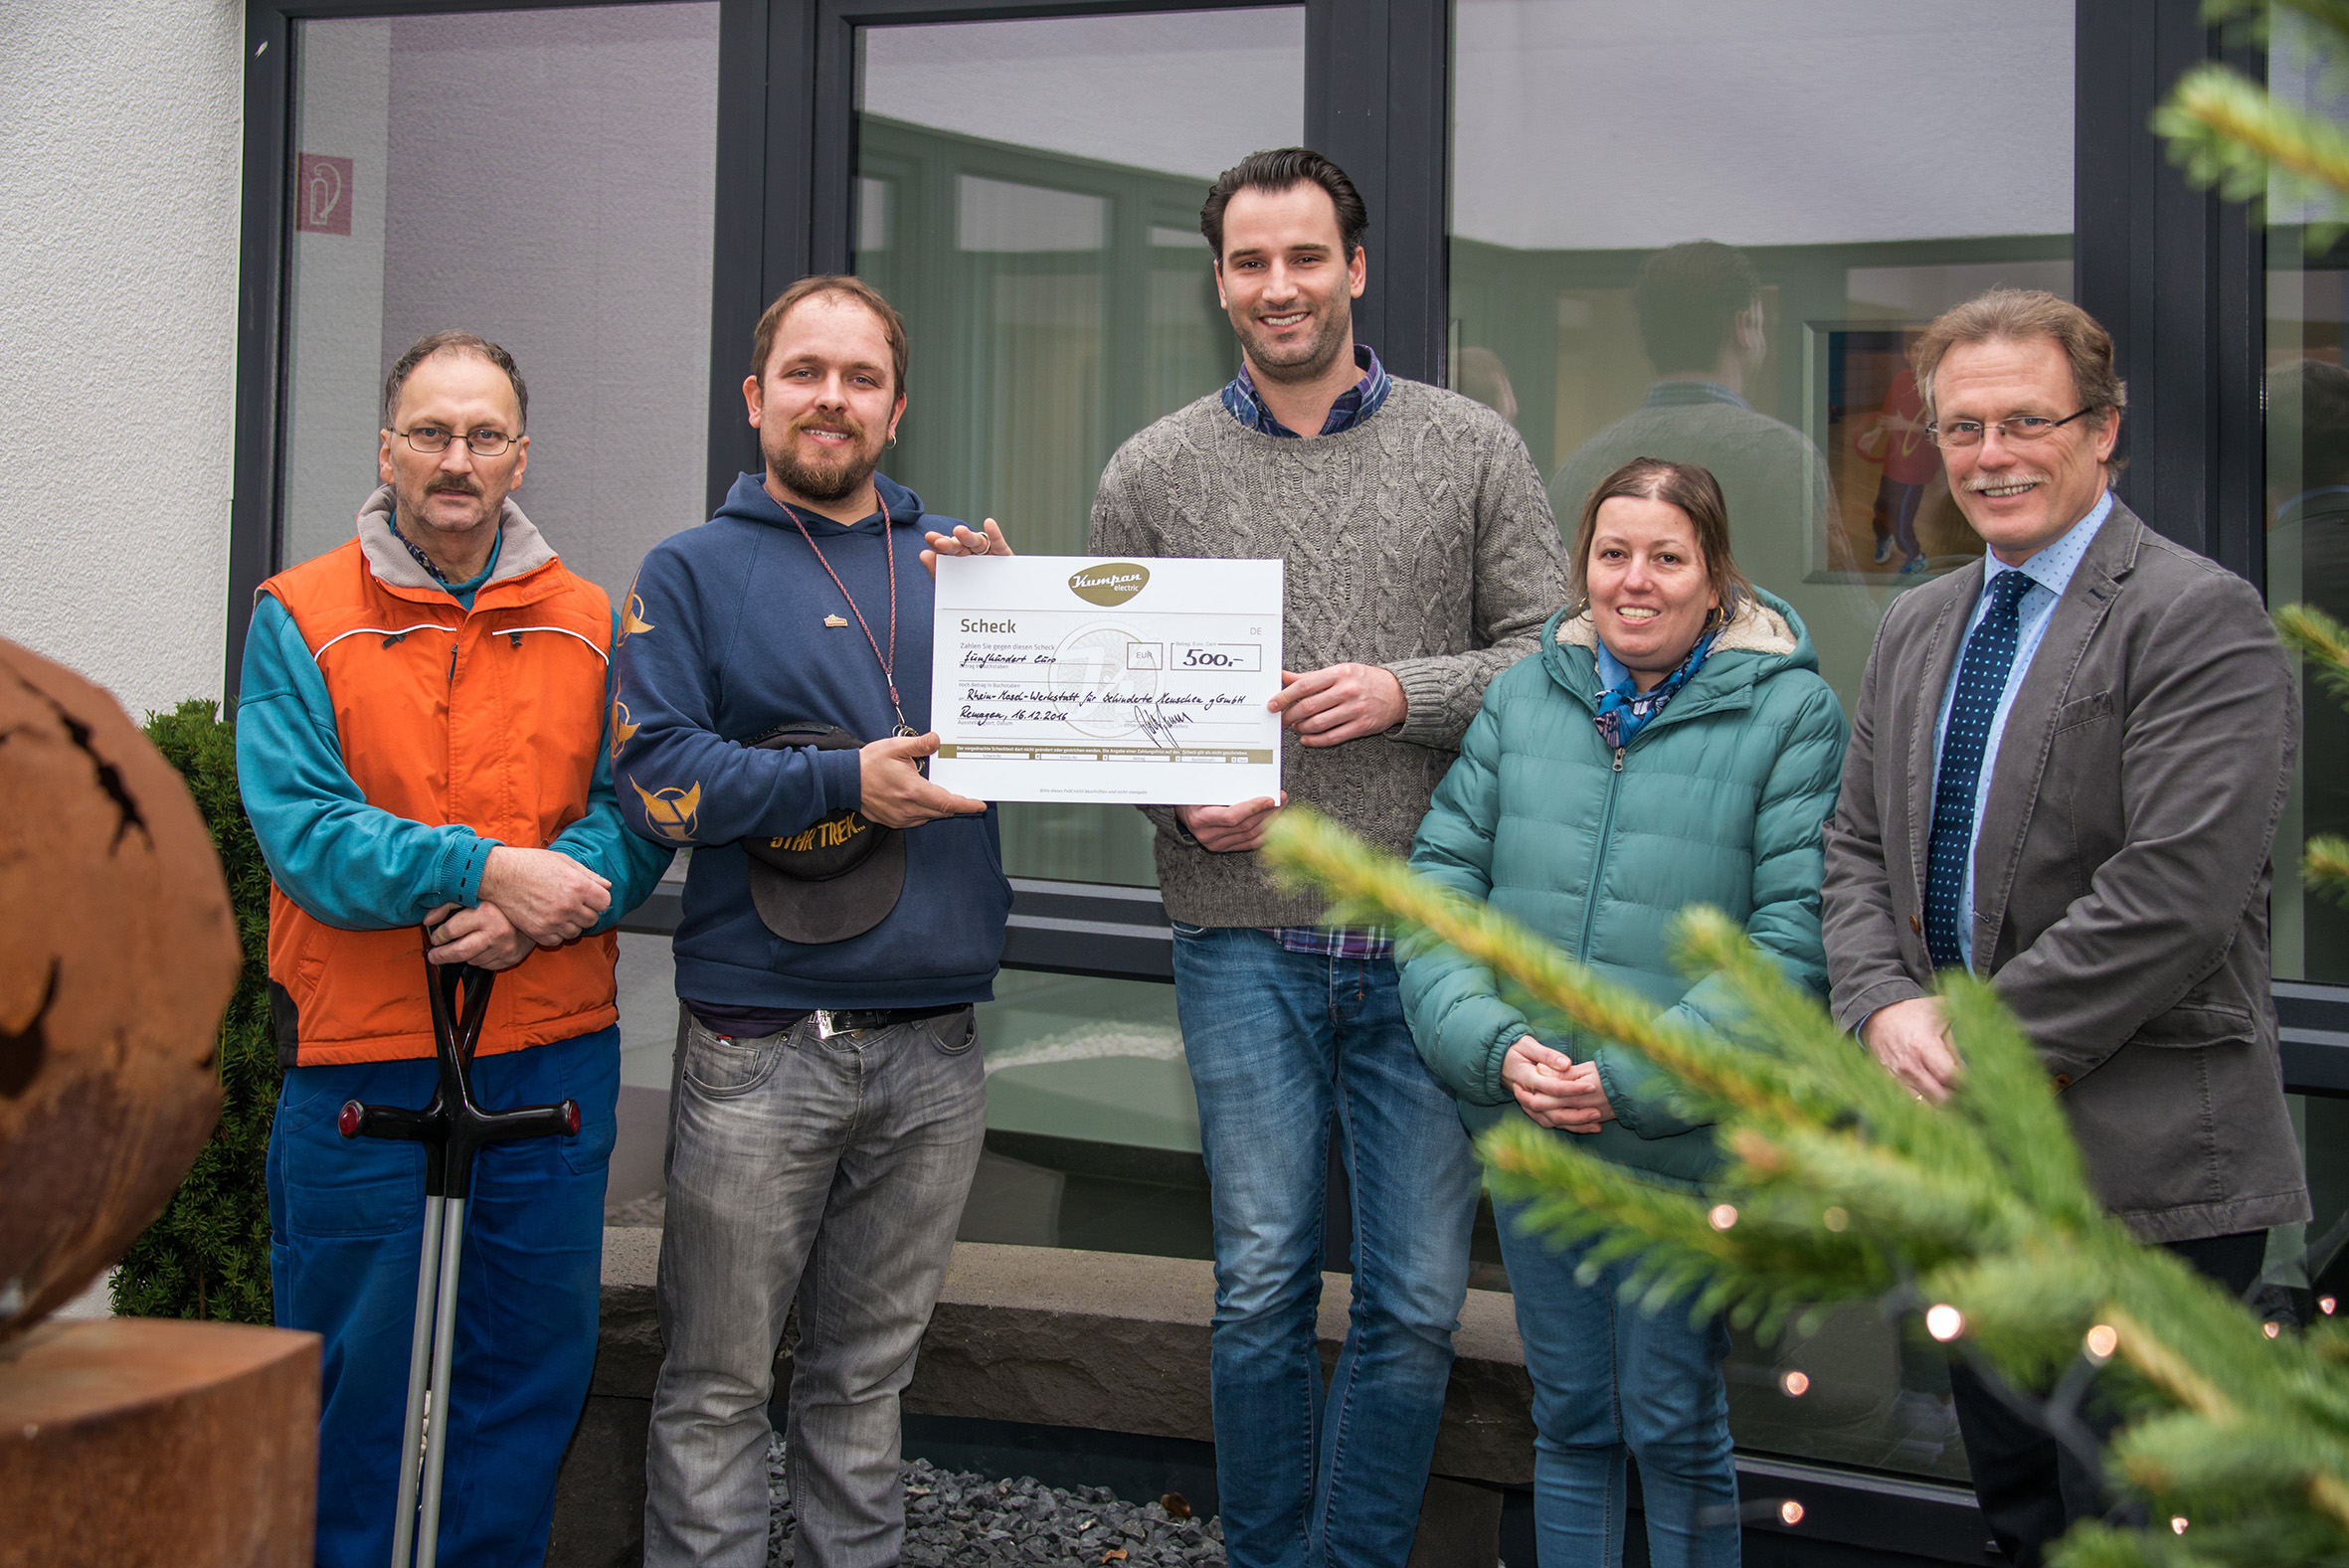 Patrik Tykesson (middle) presents the €500 check to the coworkers and manager of the Rhein-Mosel workshop, Mr. Thomas Hoffmann (right)